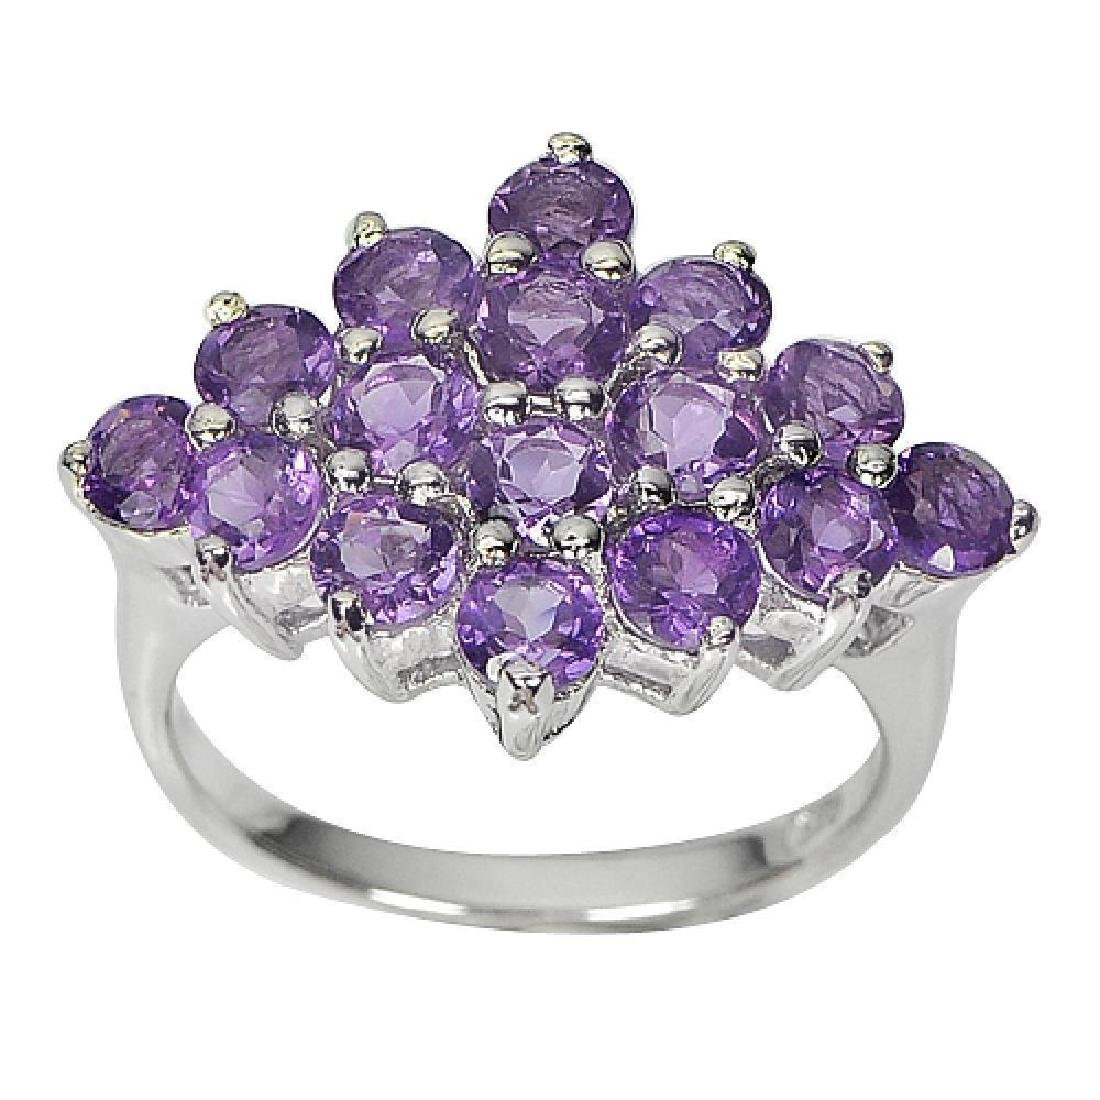 4.78 G. Amethyst 925 Sterling Silver Ring Size 7